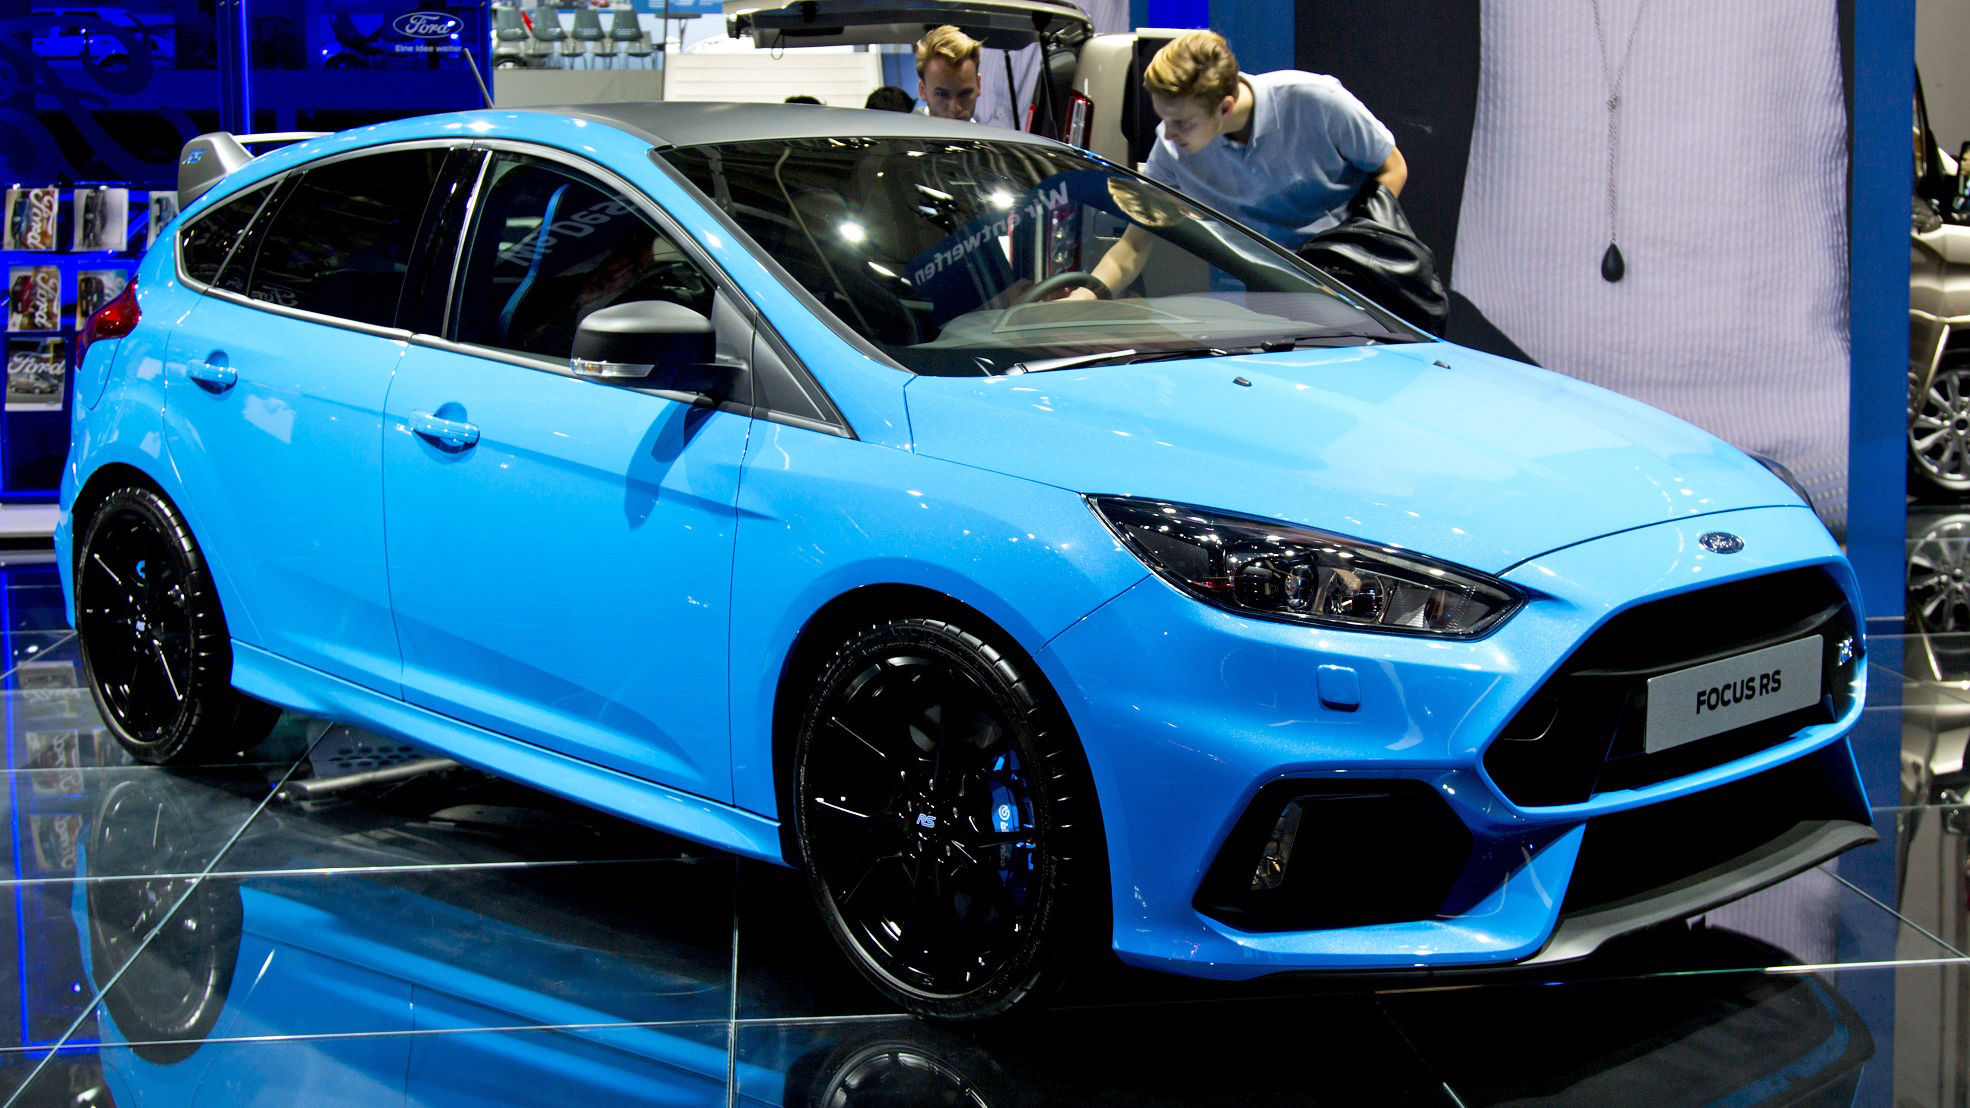 The new Ford Focus RS side